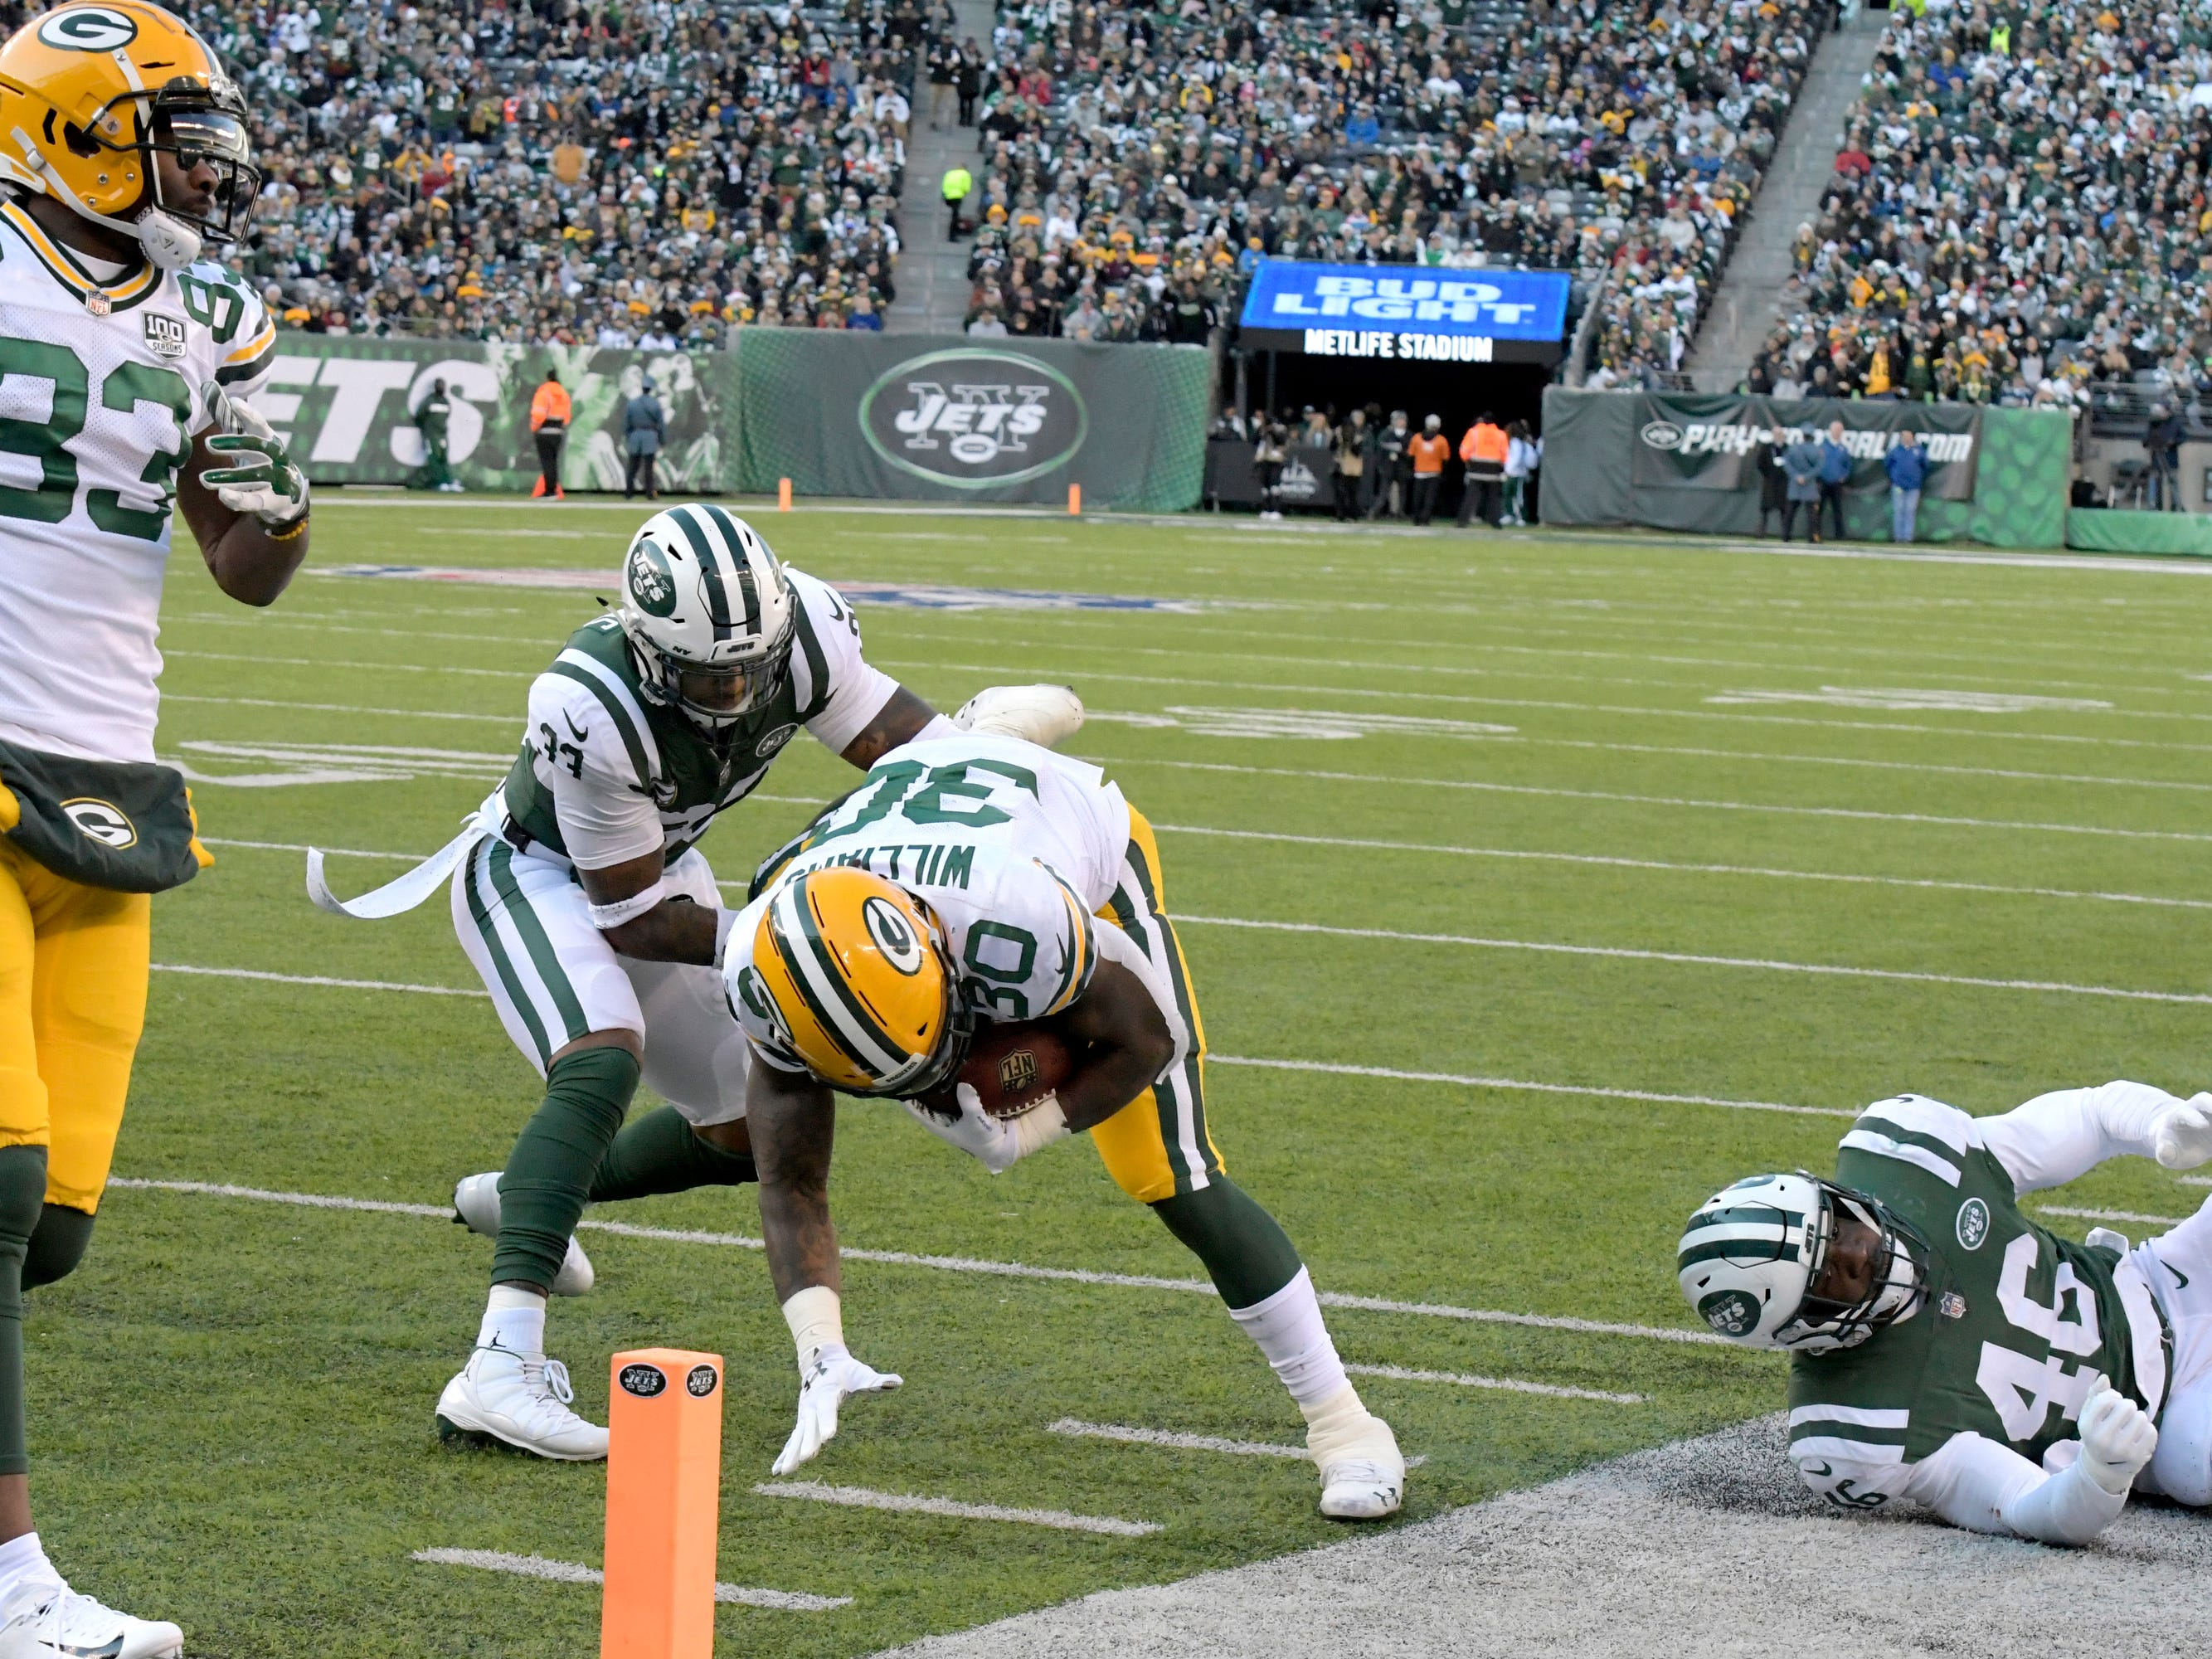 Green Bay Packers running back Jamaal Williams (30) leaps toward the end zone as New York Jets strong safety Jamal Adams tries to stop him during the first half of an NFL football game, Sunday, Dec. 23, 2018, in East Rutherford, N.J. Williams scored on the play. (AP Photo/Bill Kostroun)